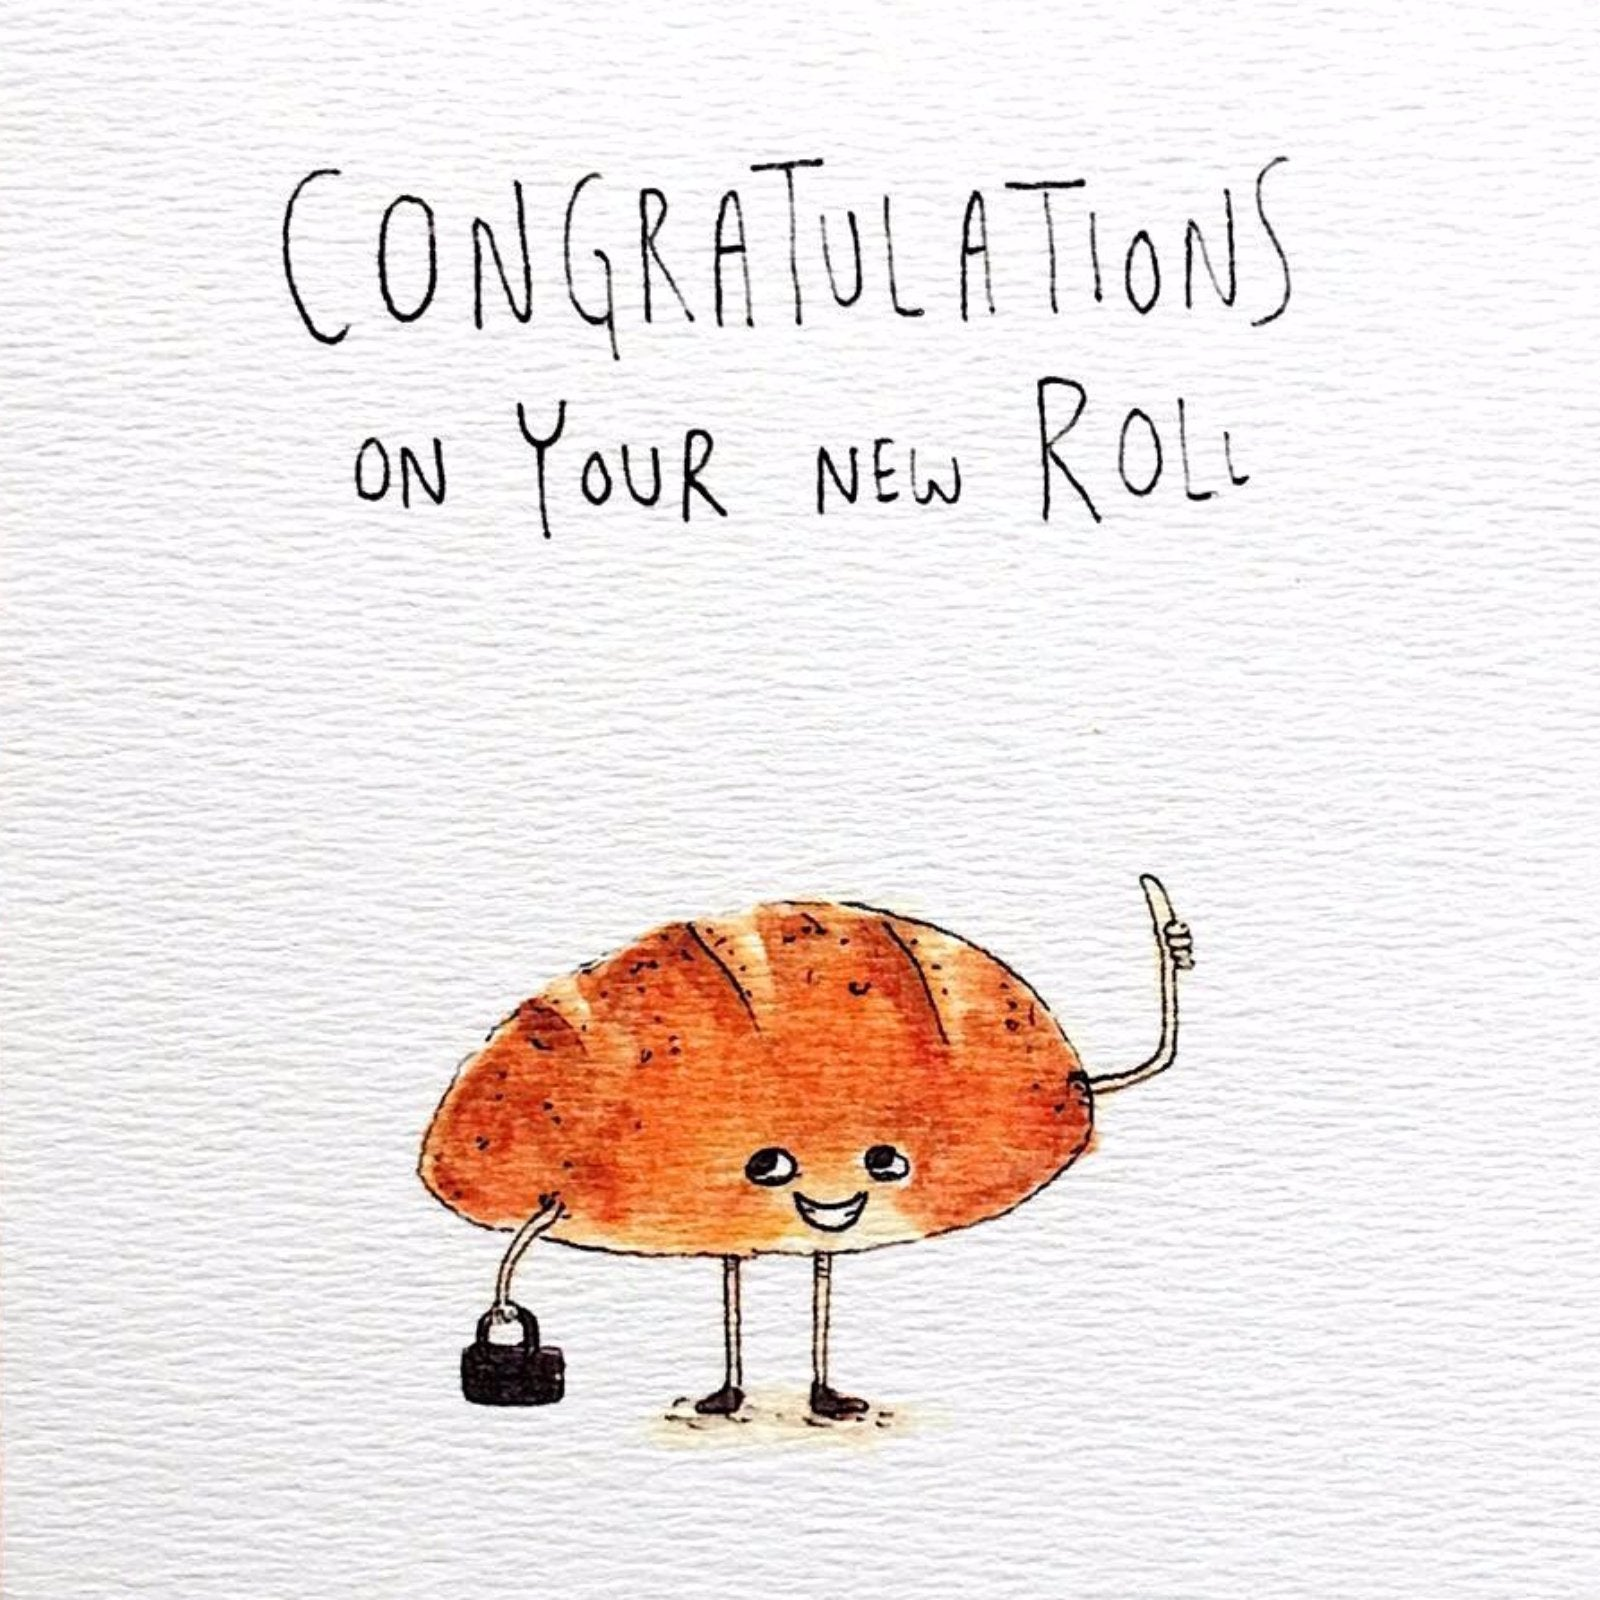 Congratulations On Your New Roll - Well Drawn